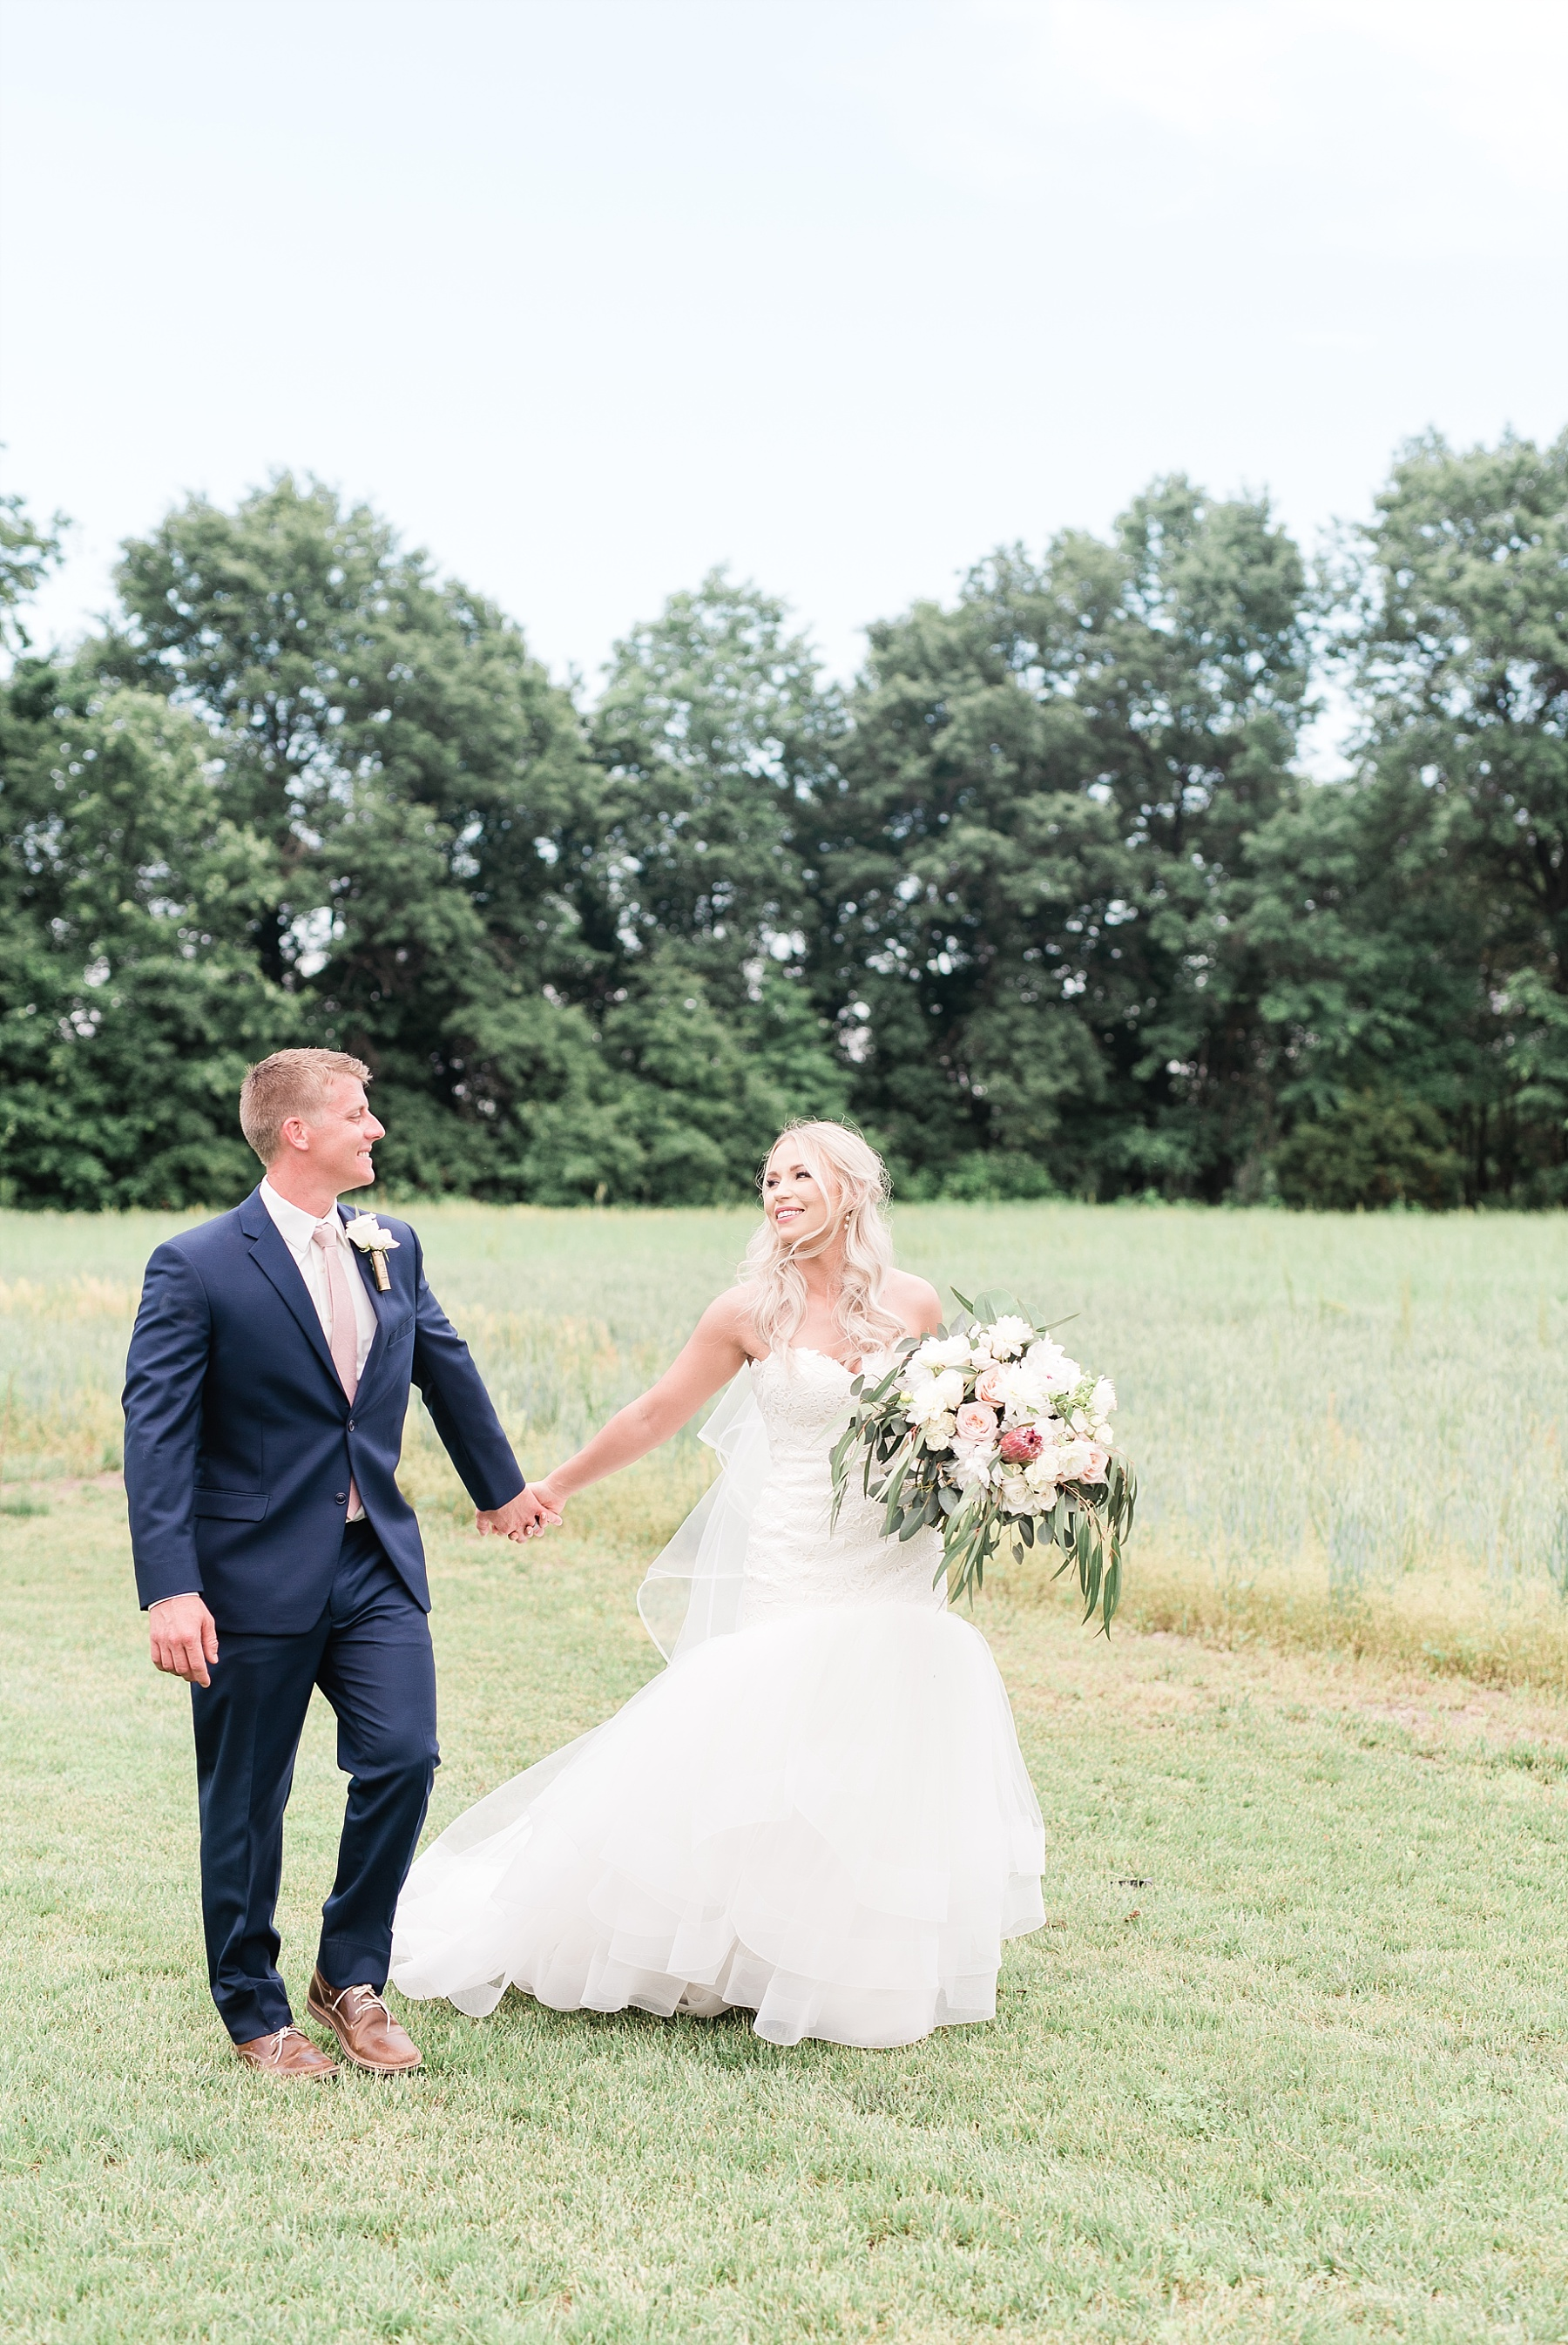 Stunning Heartfelt, Elegant, Fine Art, Chic, Outdoor Spring Wedding with Blush, Cream, Greenery, Rose Gold, and Sequins at Emerson Fields Venue by Kelsi Kliethermes Photography_0056.jpg